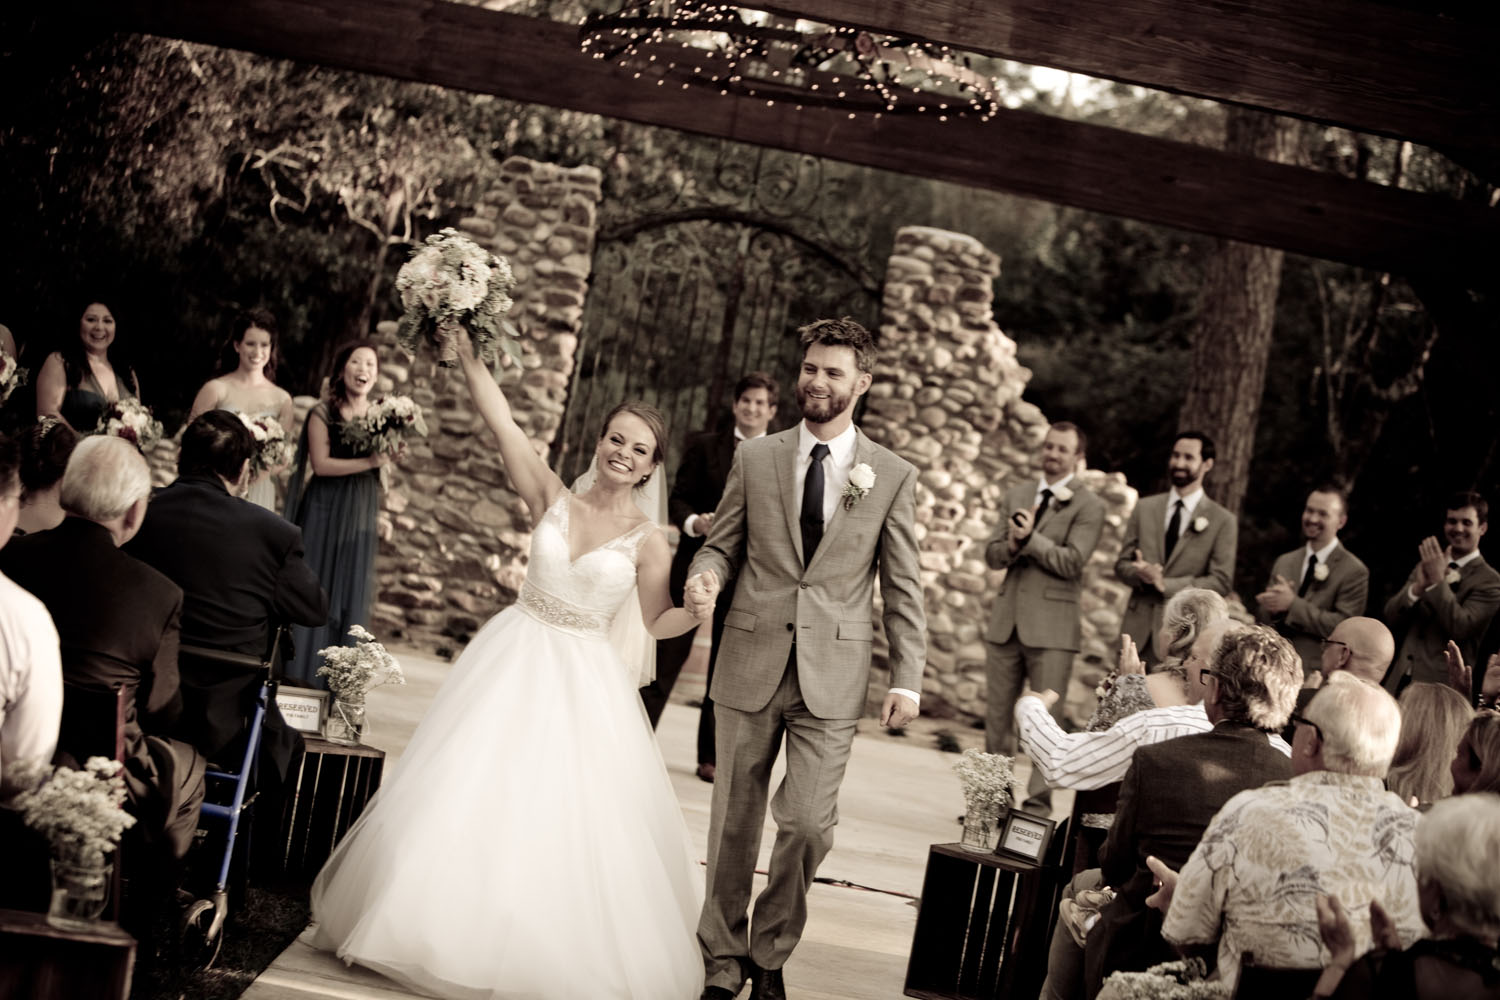 """A picture of one of our fantastic weddings featuring the beautiful bride and her handsome groom after the big """"I-do's""""."""